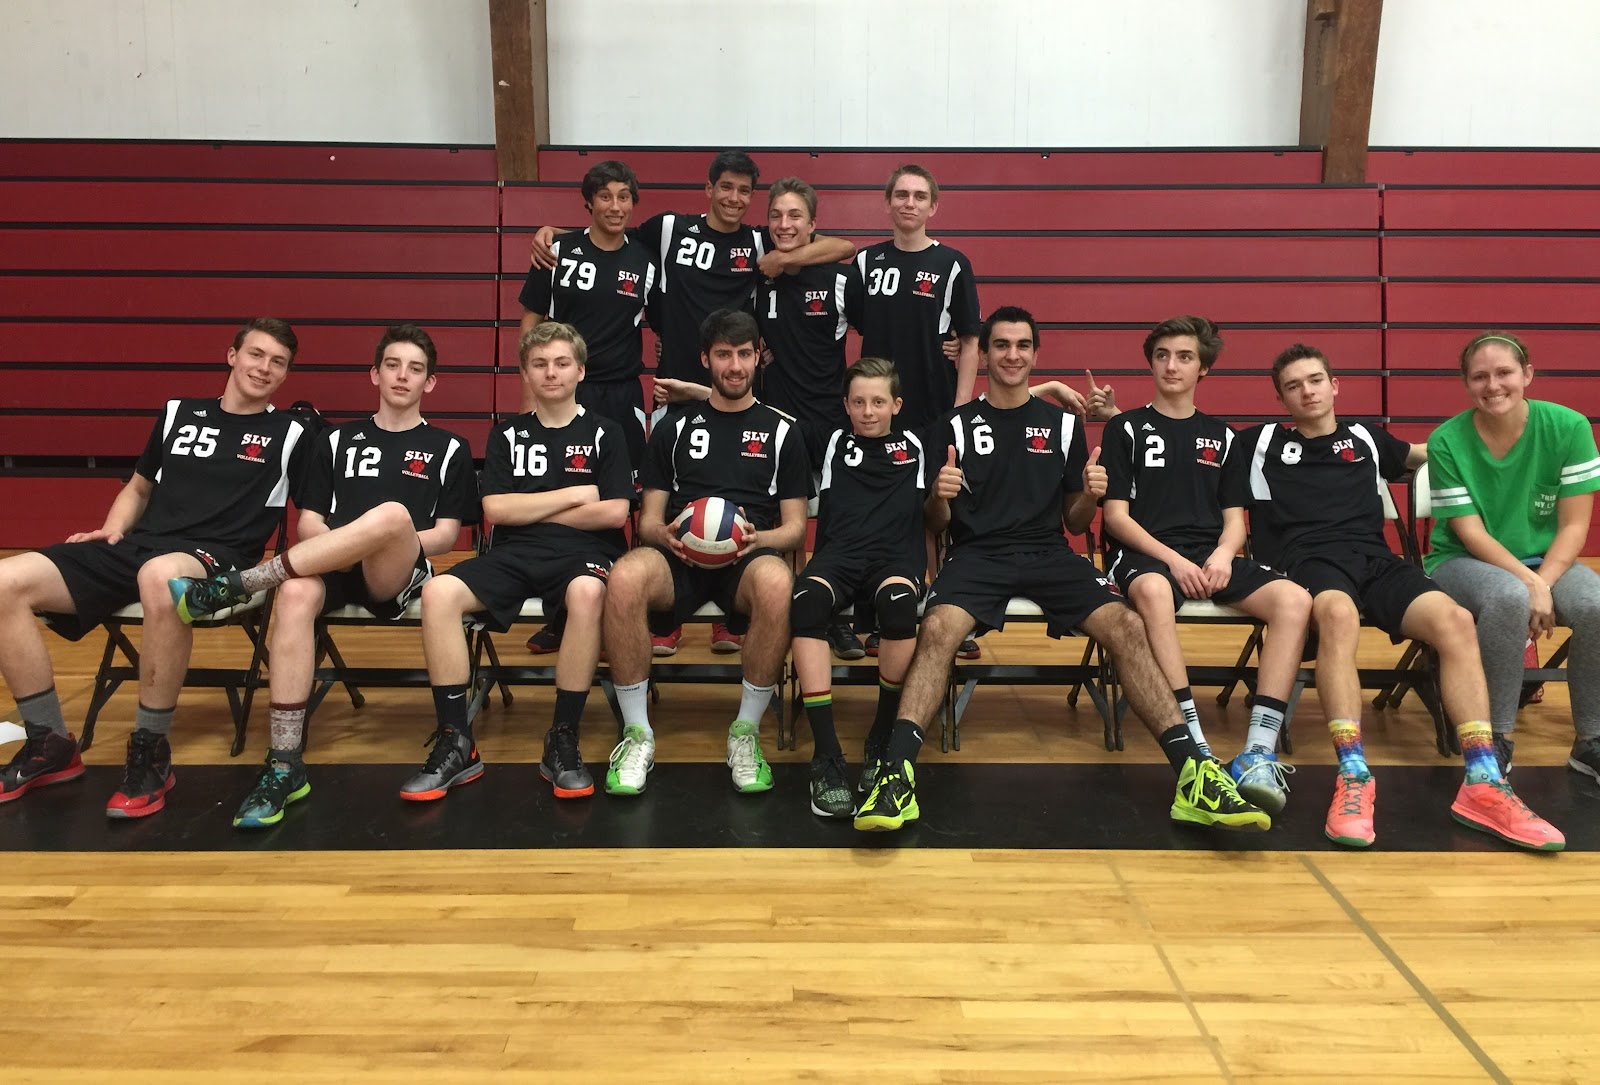 Boys Volleyball.jpg